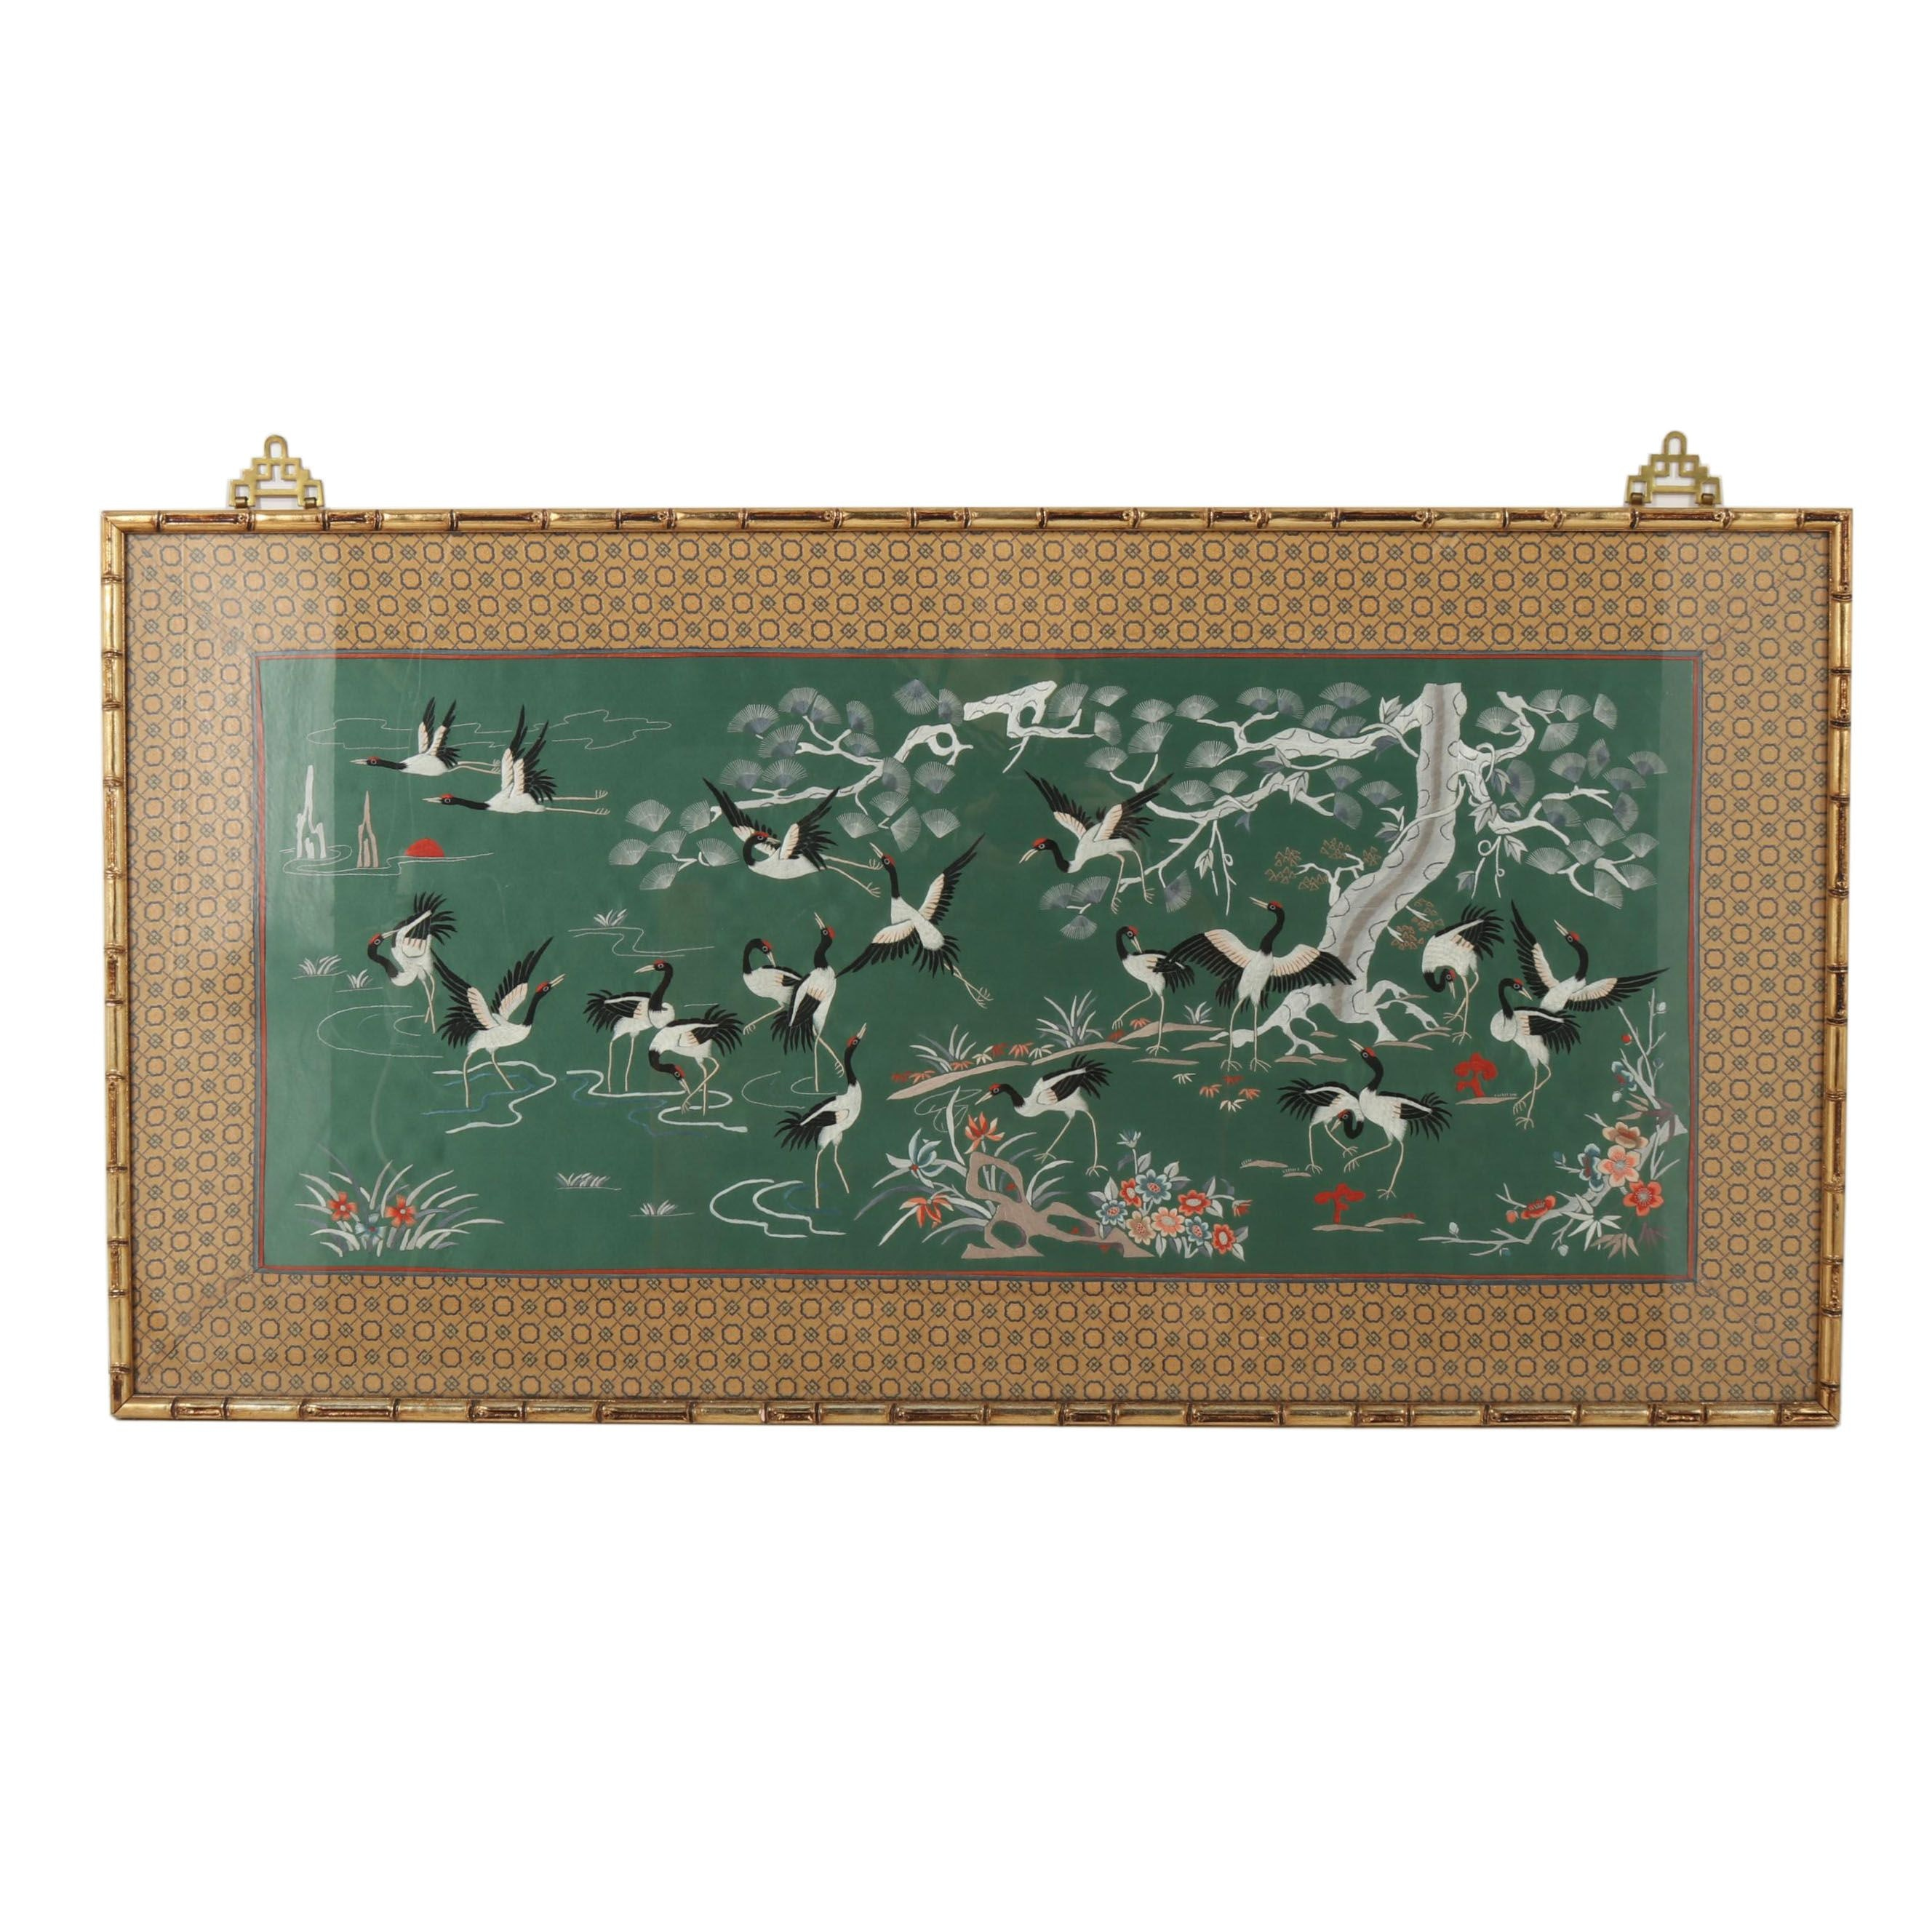 Chinese Silk Embroidery of Cranes